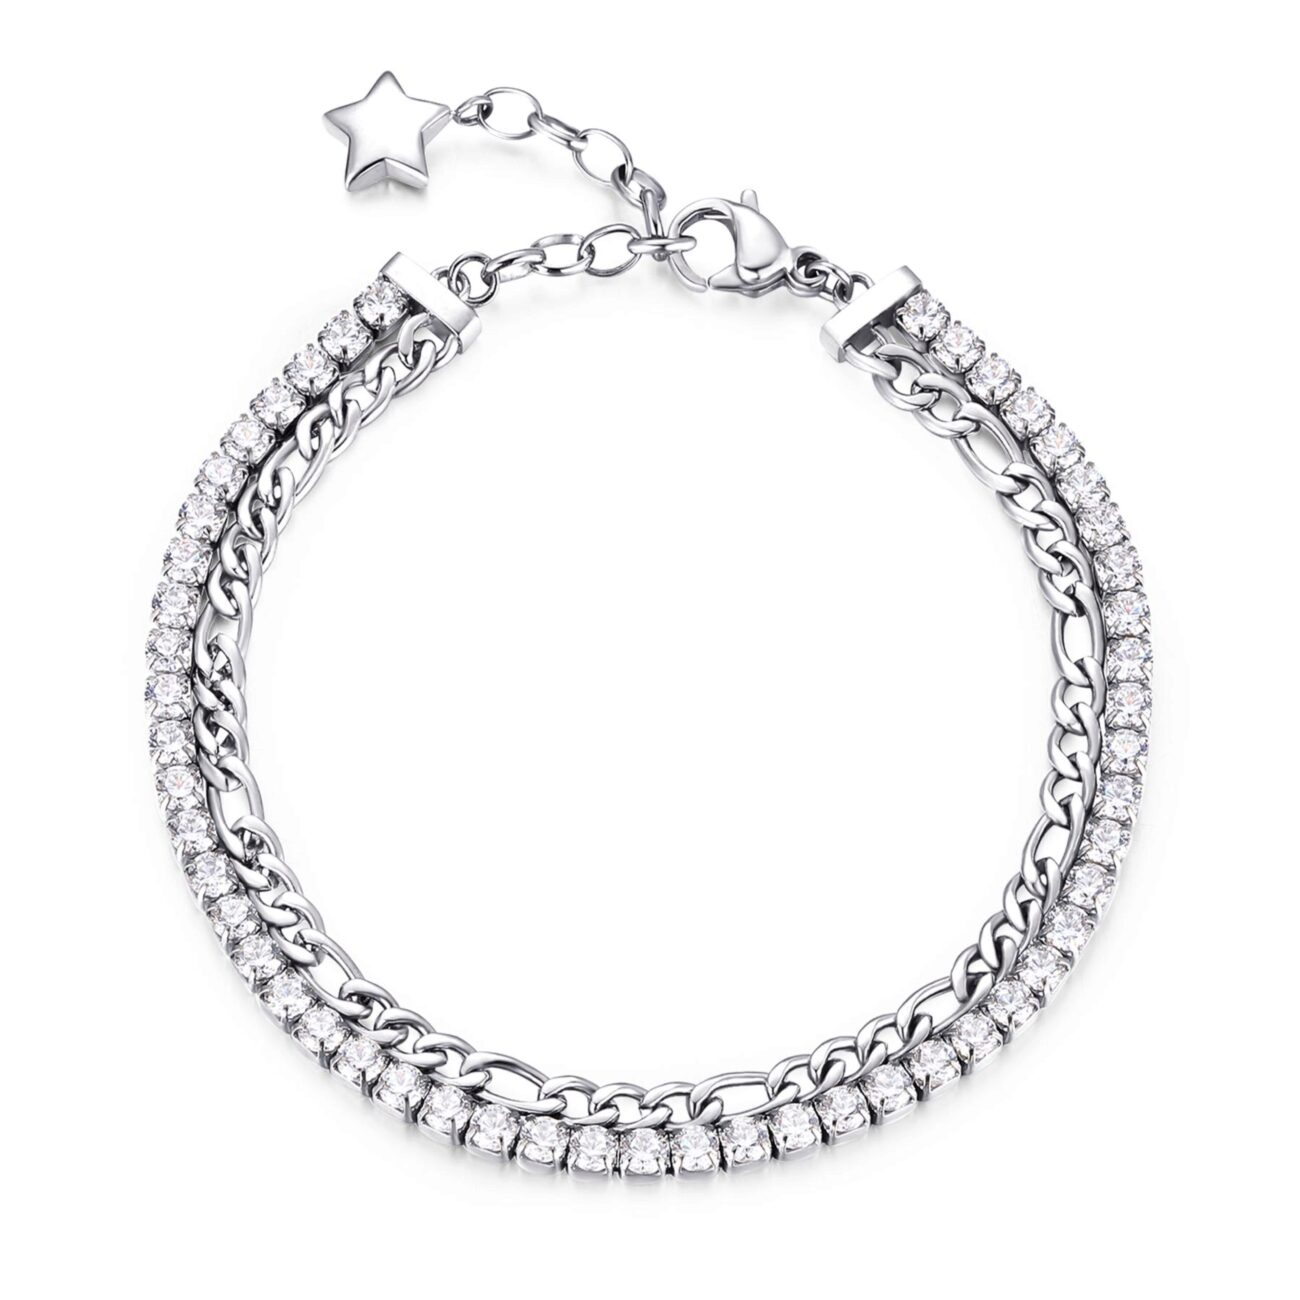 304 stainless steel double tennis bracelet with white cubic zirconia.